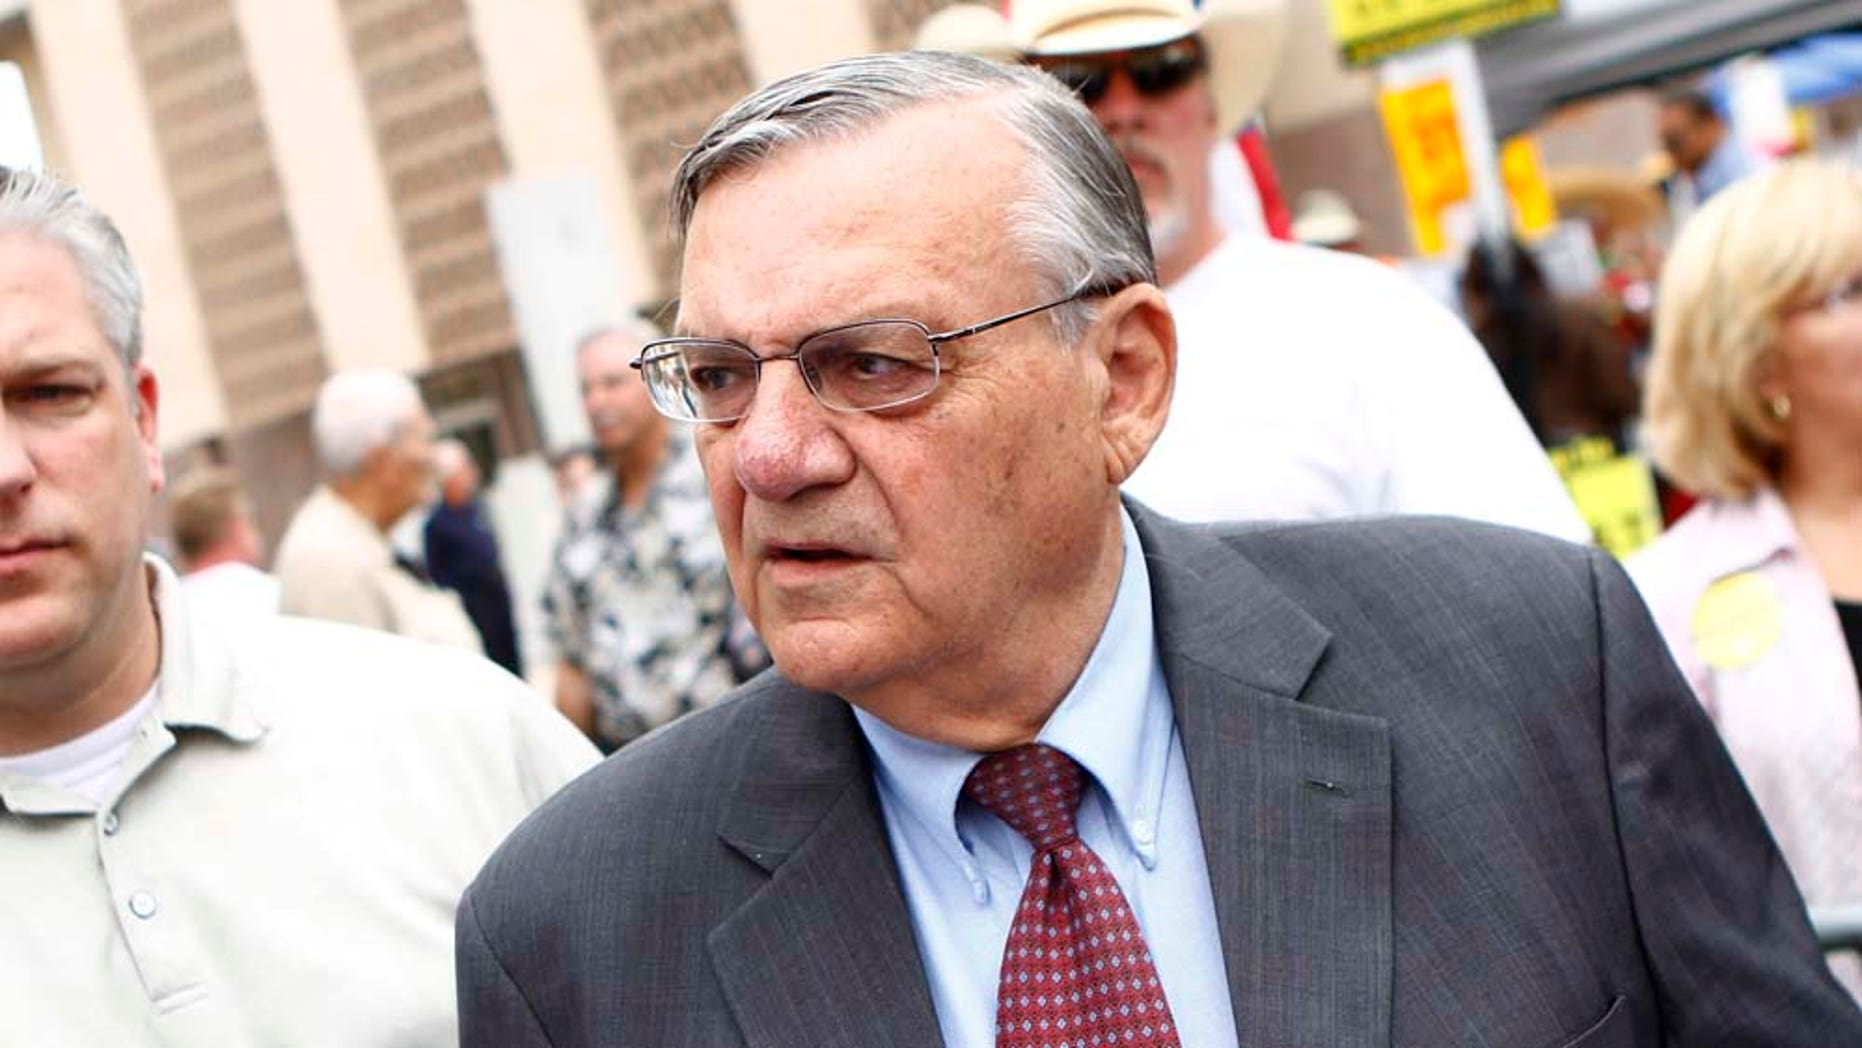 Sheriff Joe Arpaio's office has settled in a profiling case, agreeing to pay $200,000 to two men who were unjustifiably stopped by law enforcement officers.